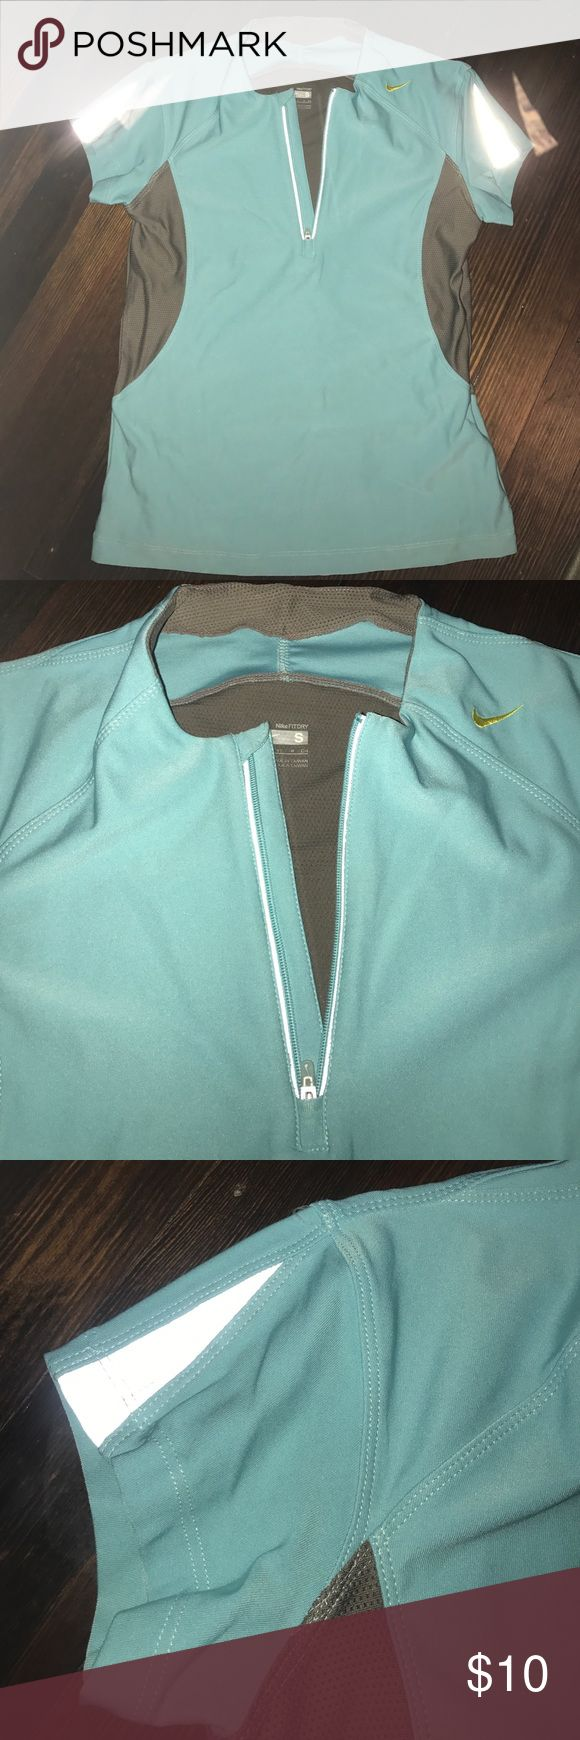 Nike Fit Dry top Tiffany blue Fitted Nike Dry Fit top with front zipper and reflective sleeves.  Pretty Tiffany blue color with grey.  Great condition! Nike Tops